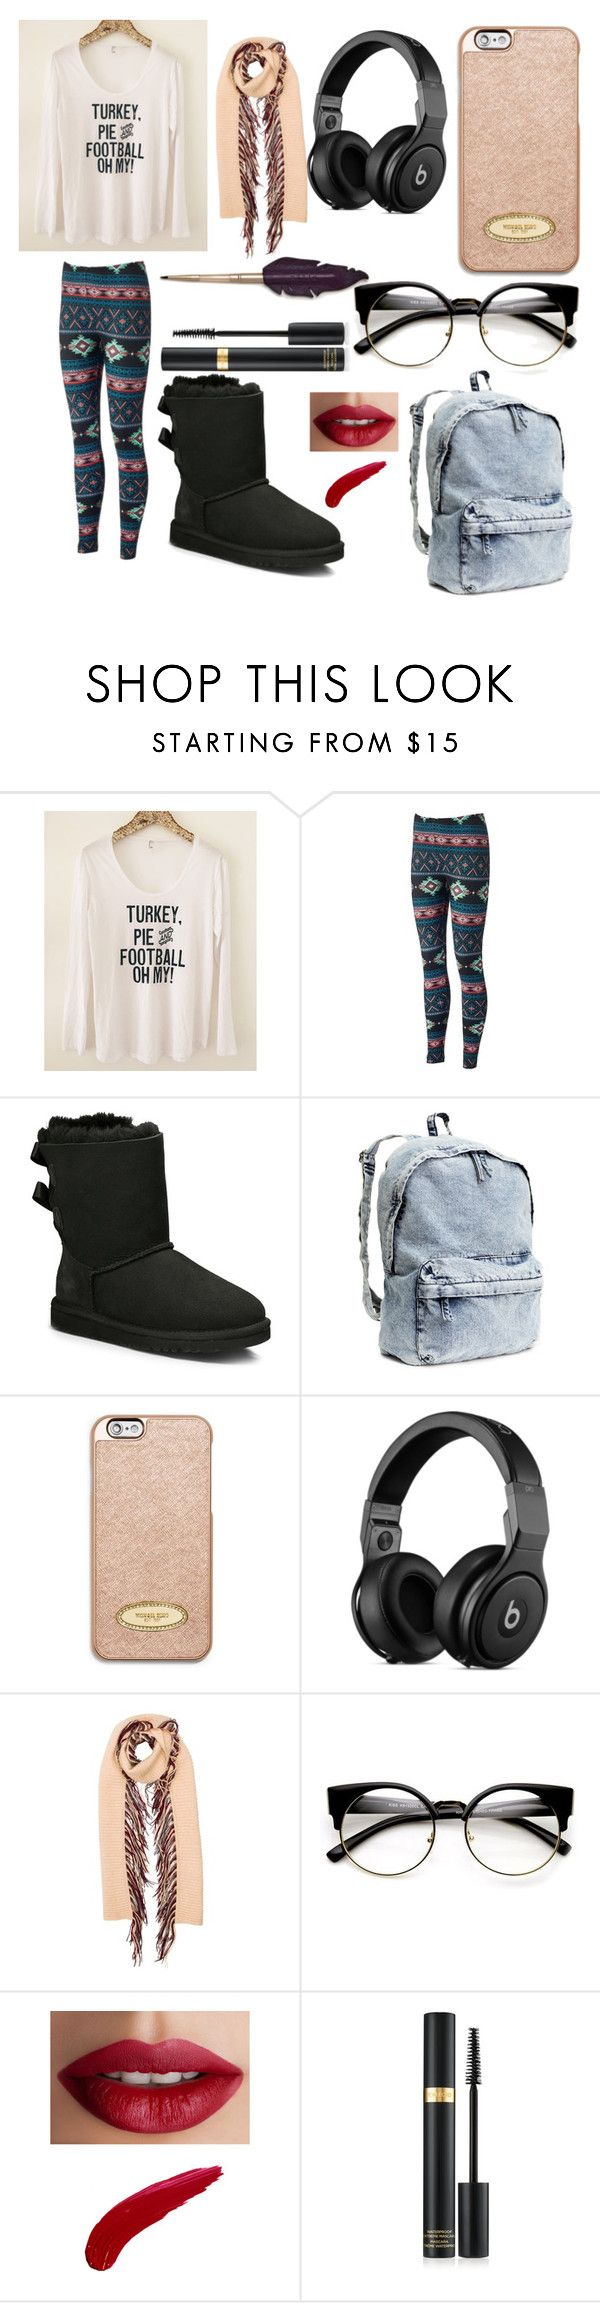 """Casual School Day #7"" by xxmonnyxx on Polyvore featuring UGG Australia, H&M, MICHAEL Michael Kors, Burberry and TheBalm"